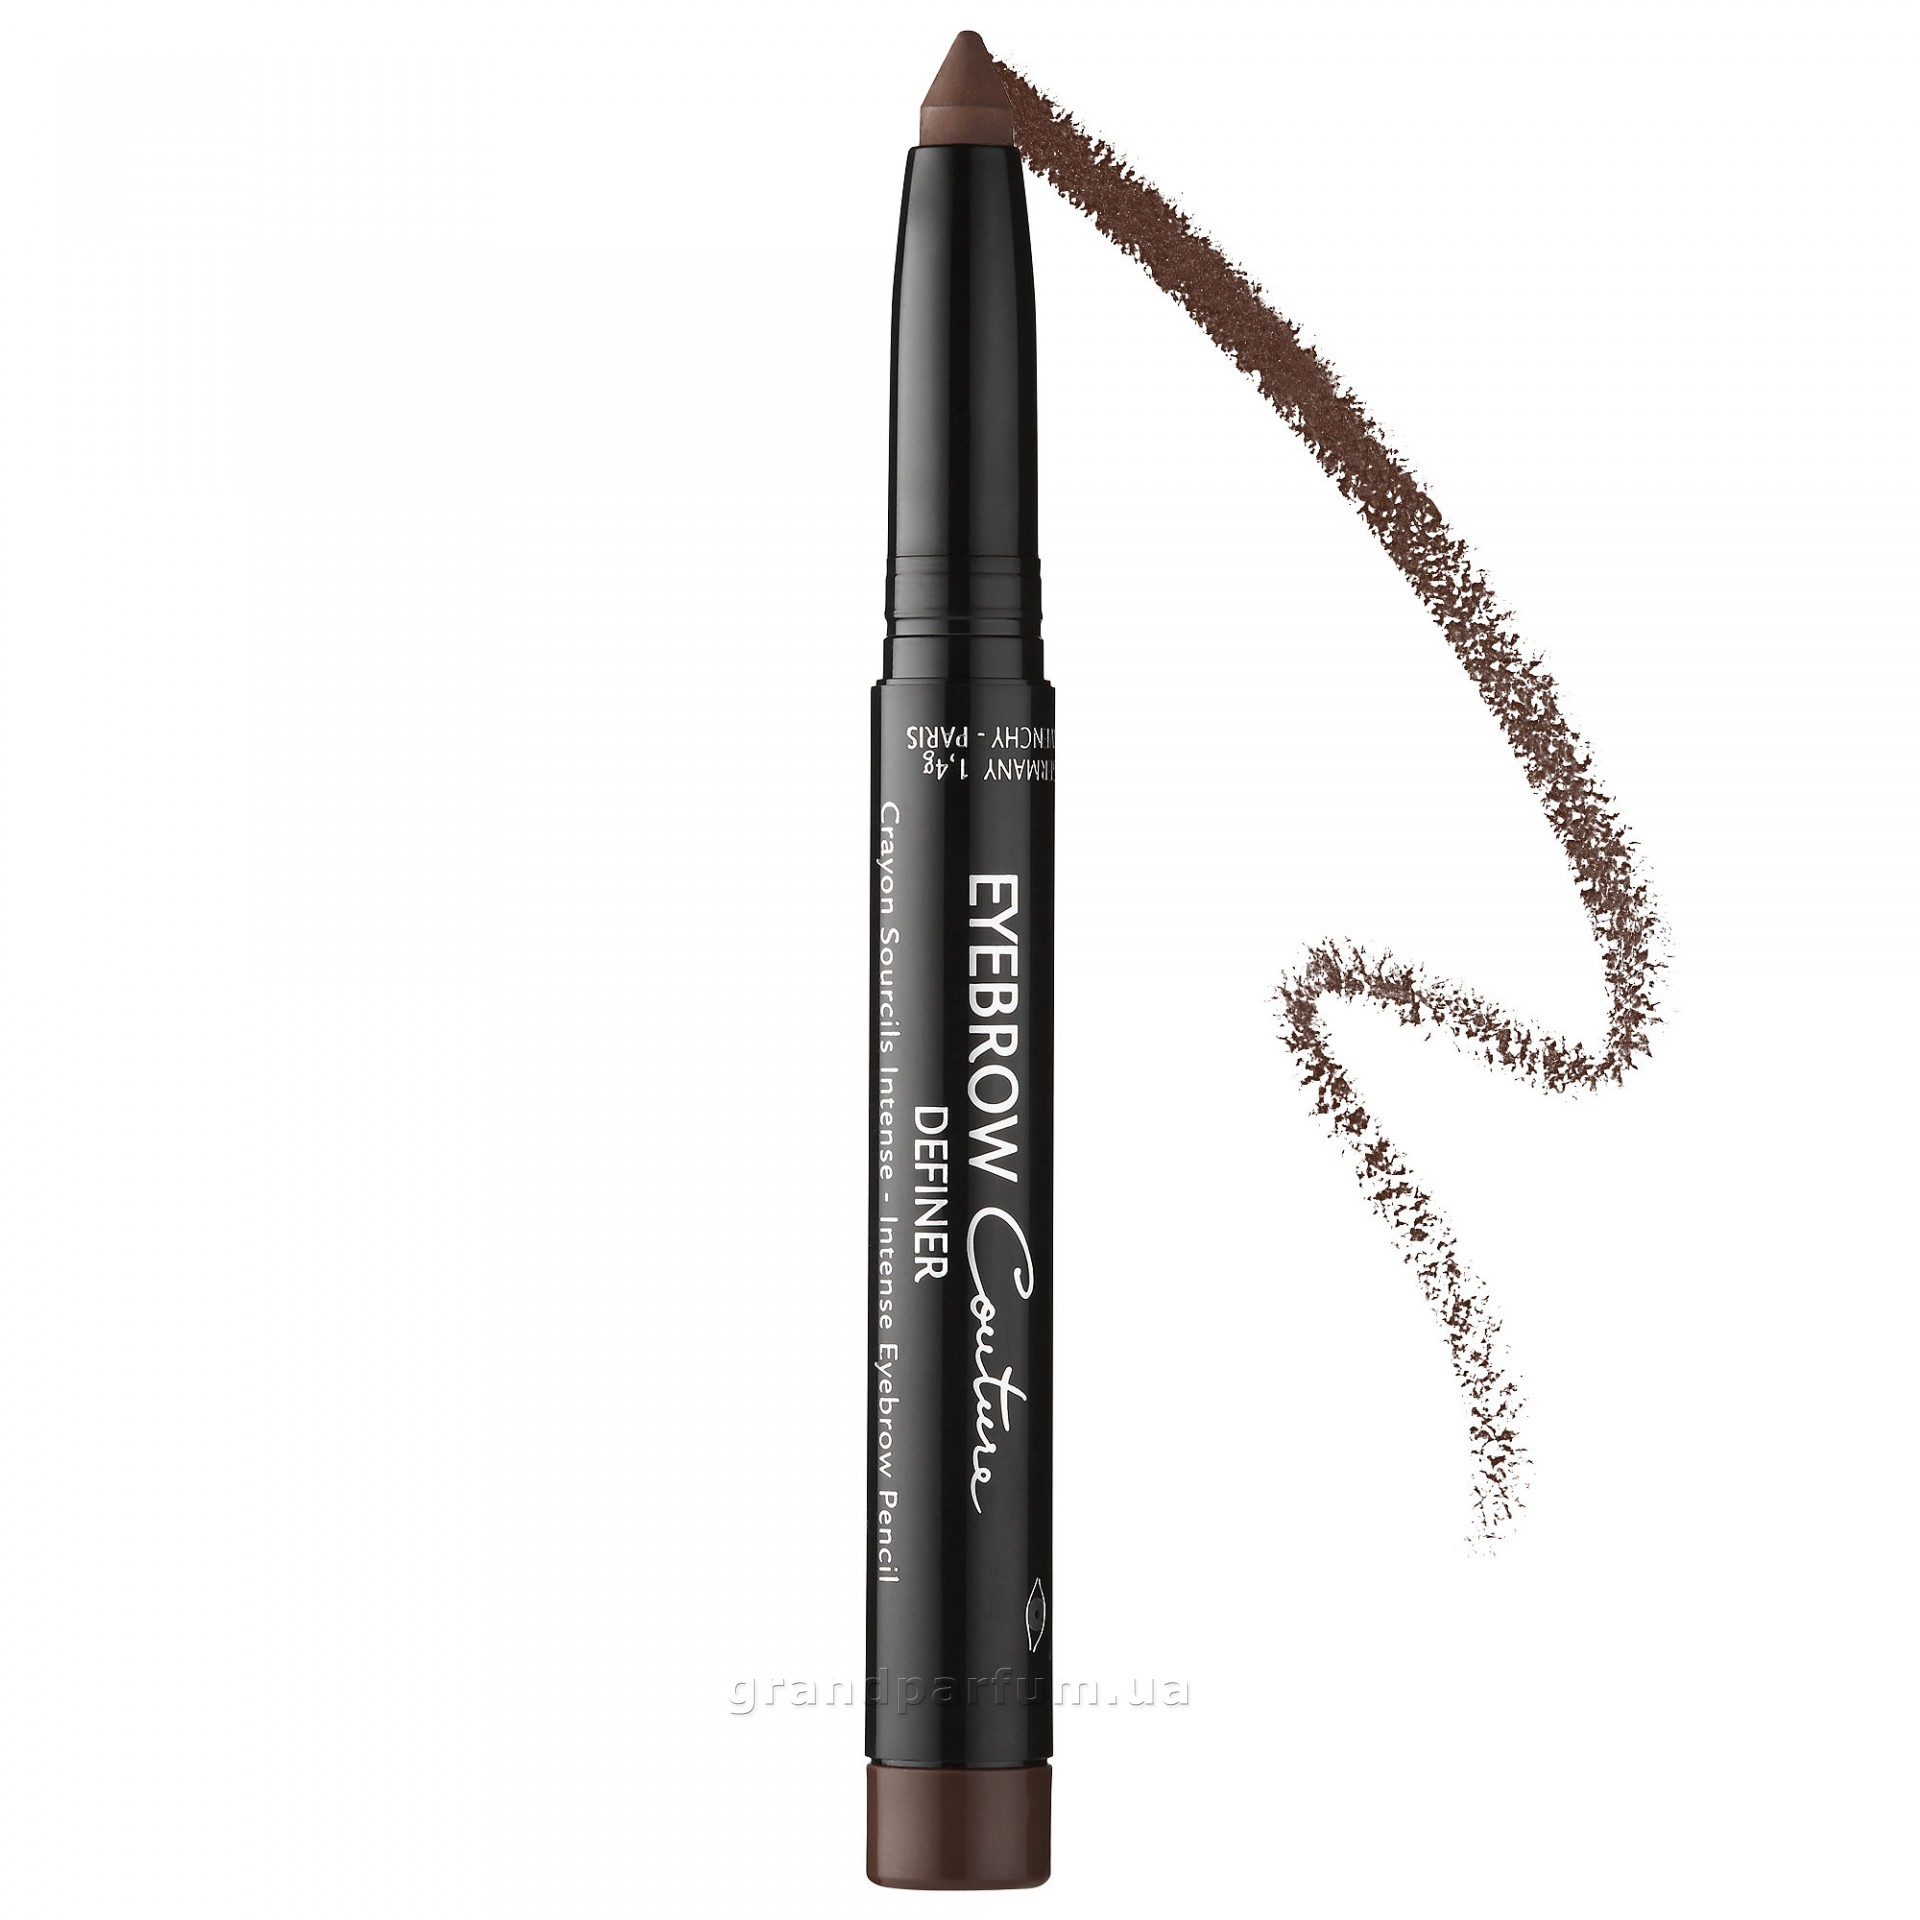 Купить Givenchy Eyebrow Couture Definer от